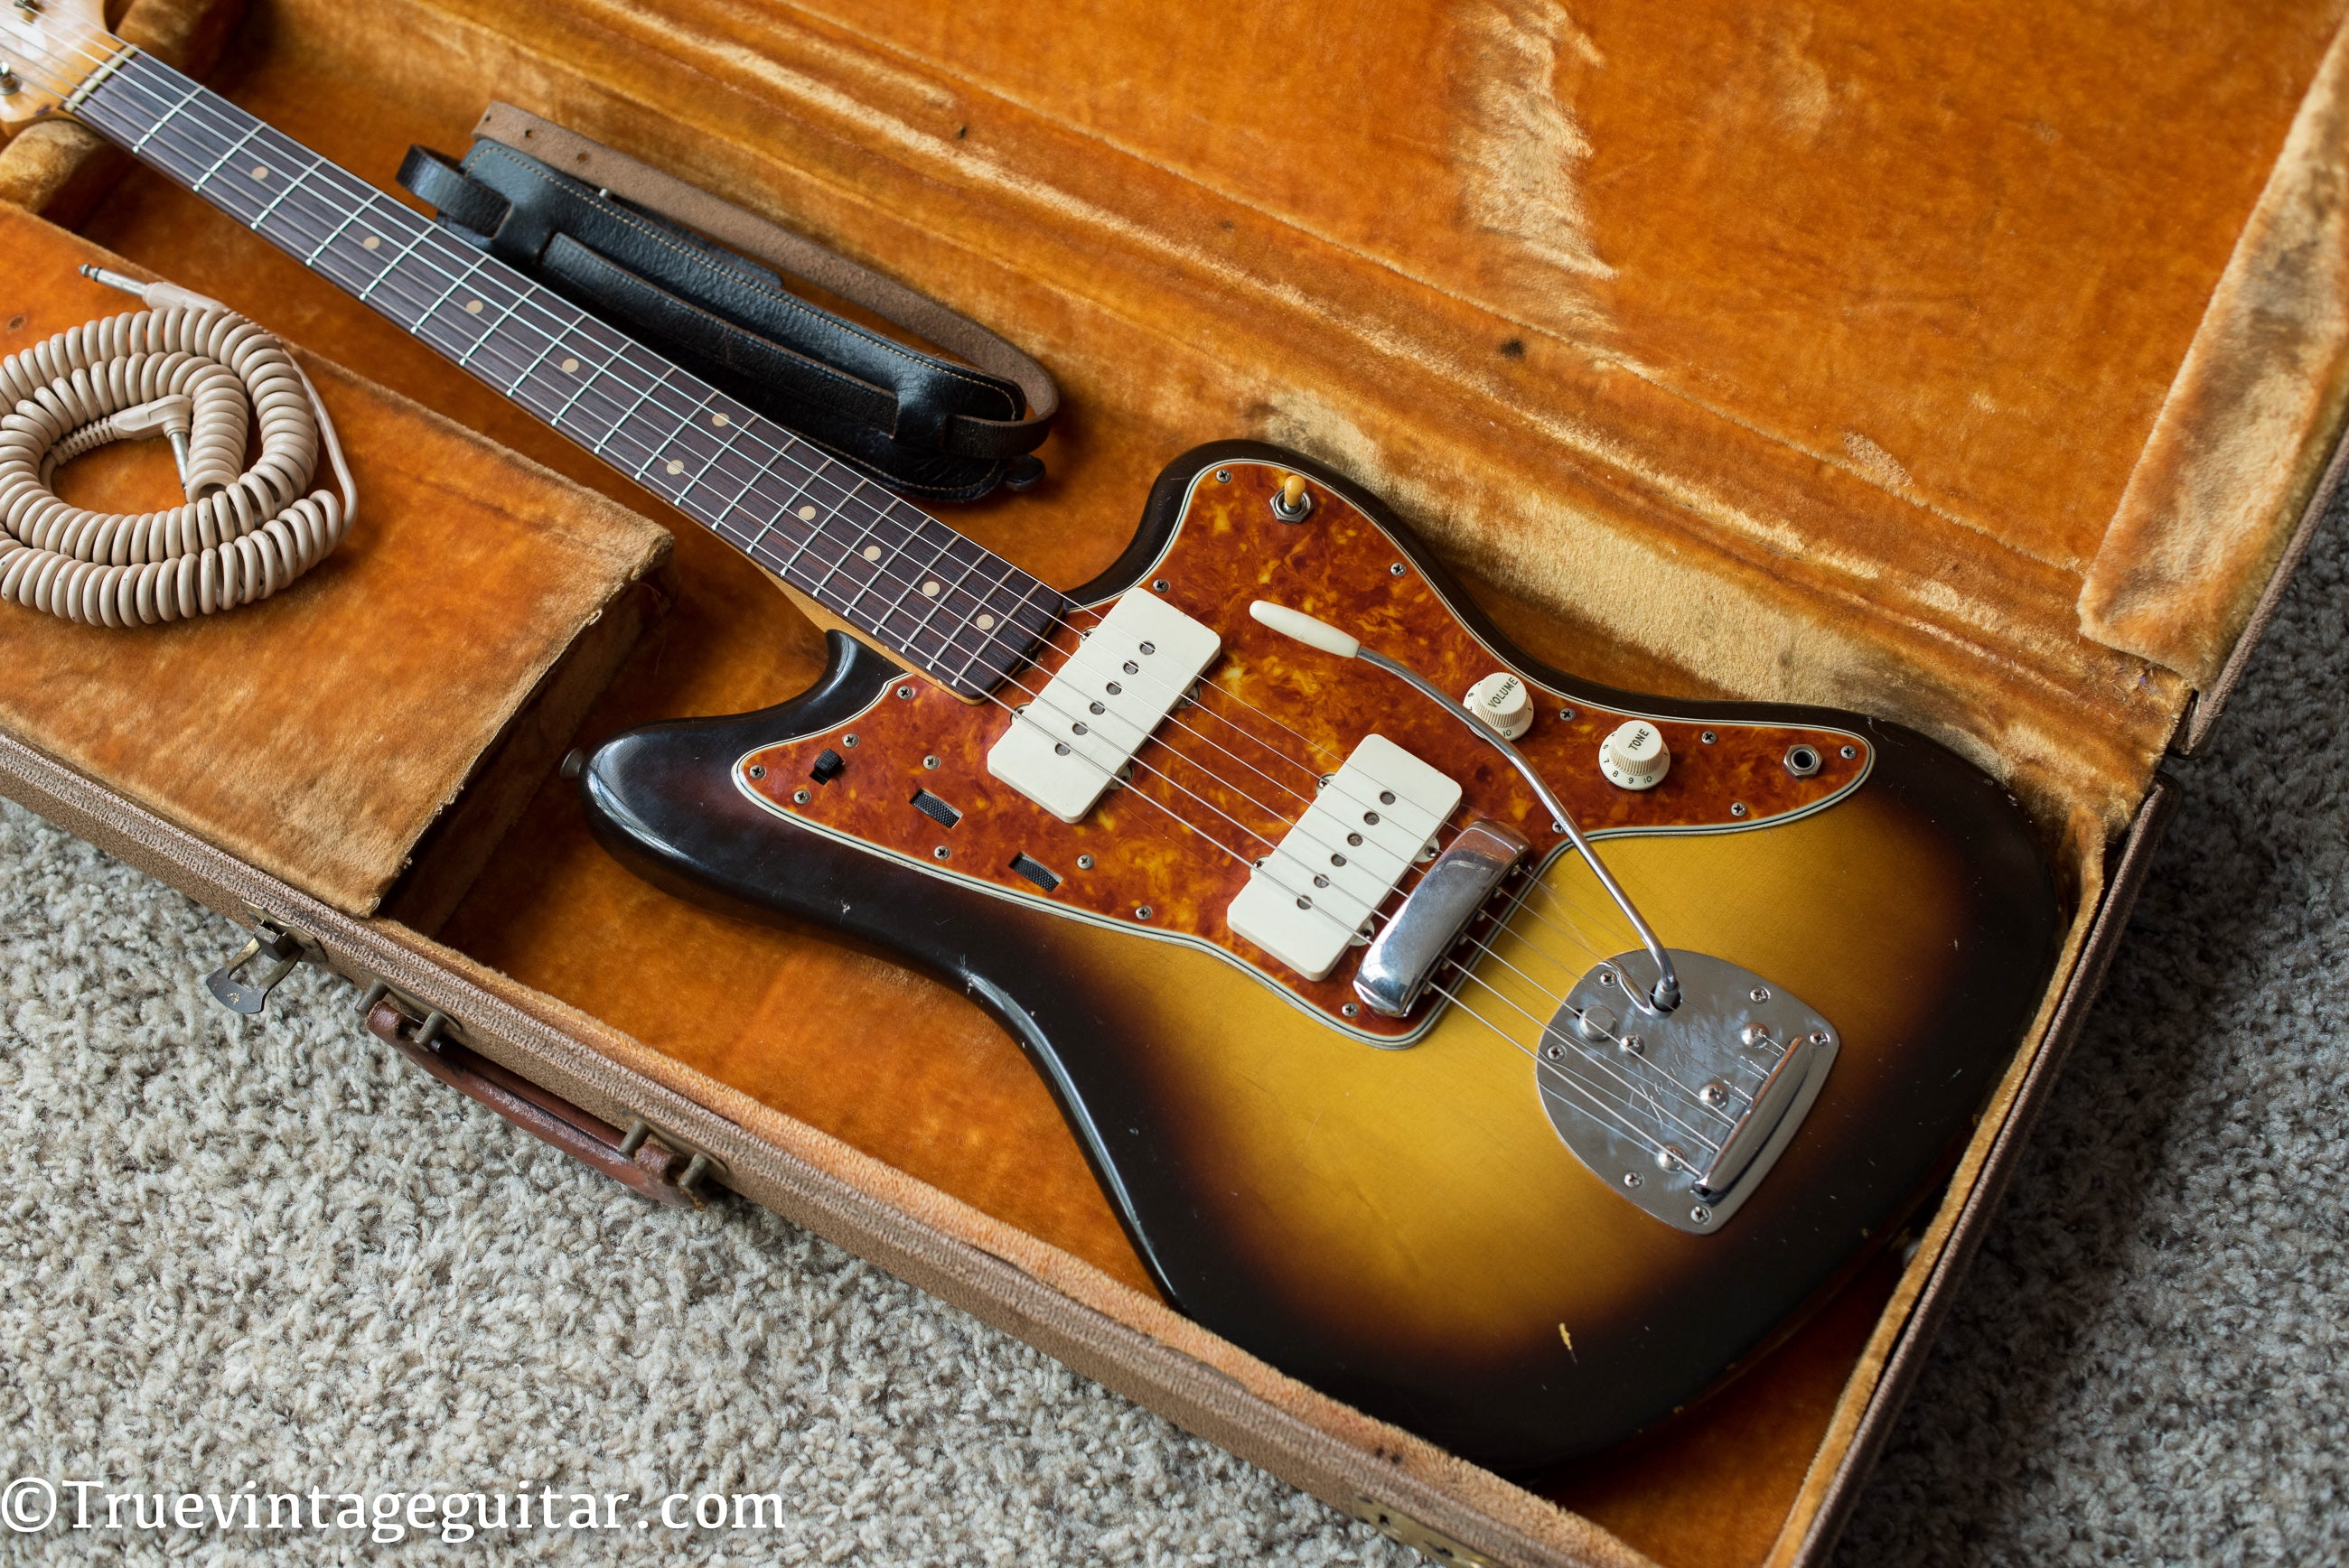 Vintage 1960 Fender Jazzmaster electric guitar